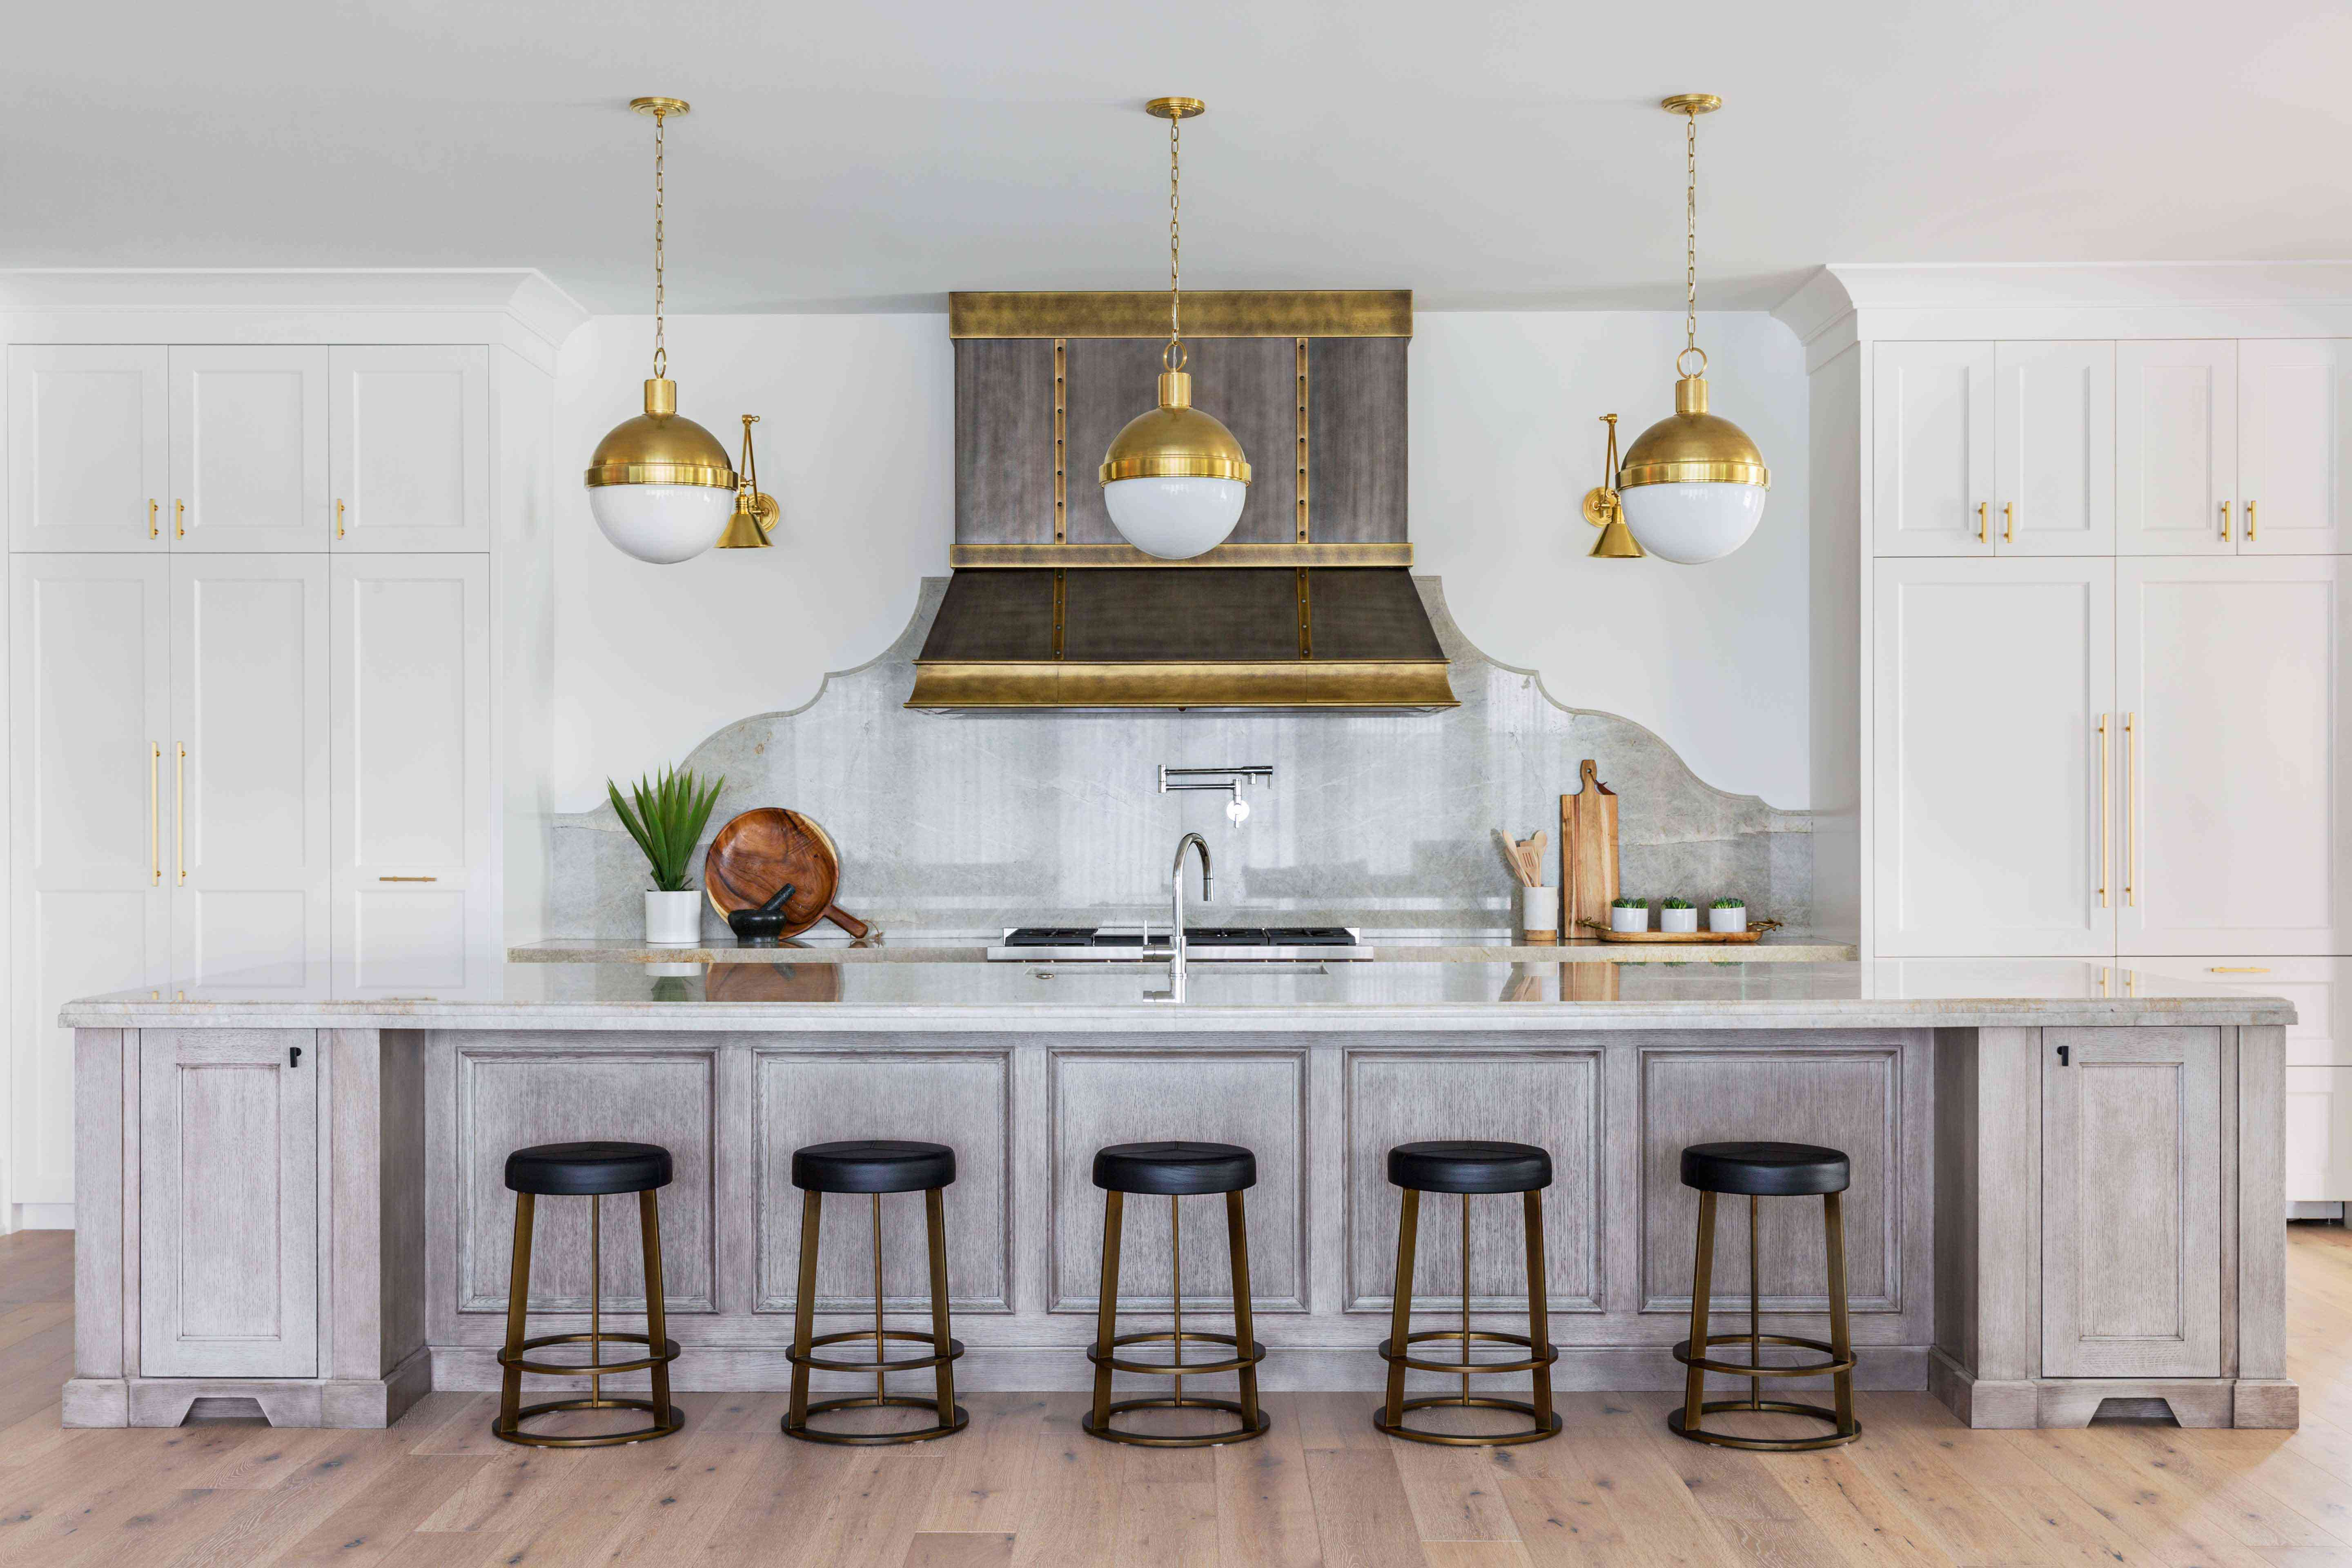 Kitchen with large wood island and brass patinaed oven hood